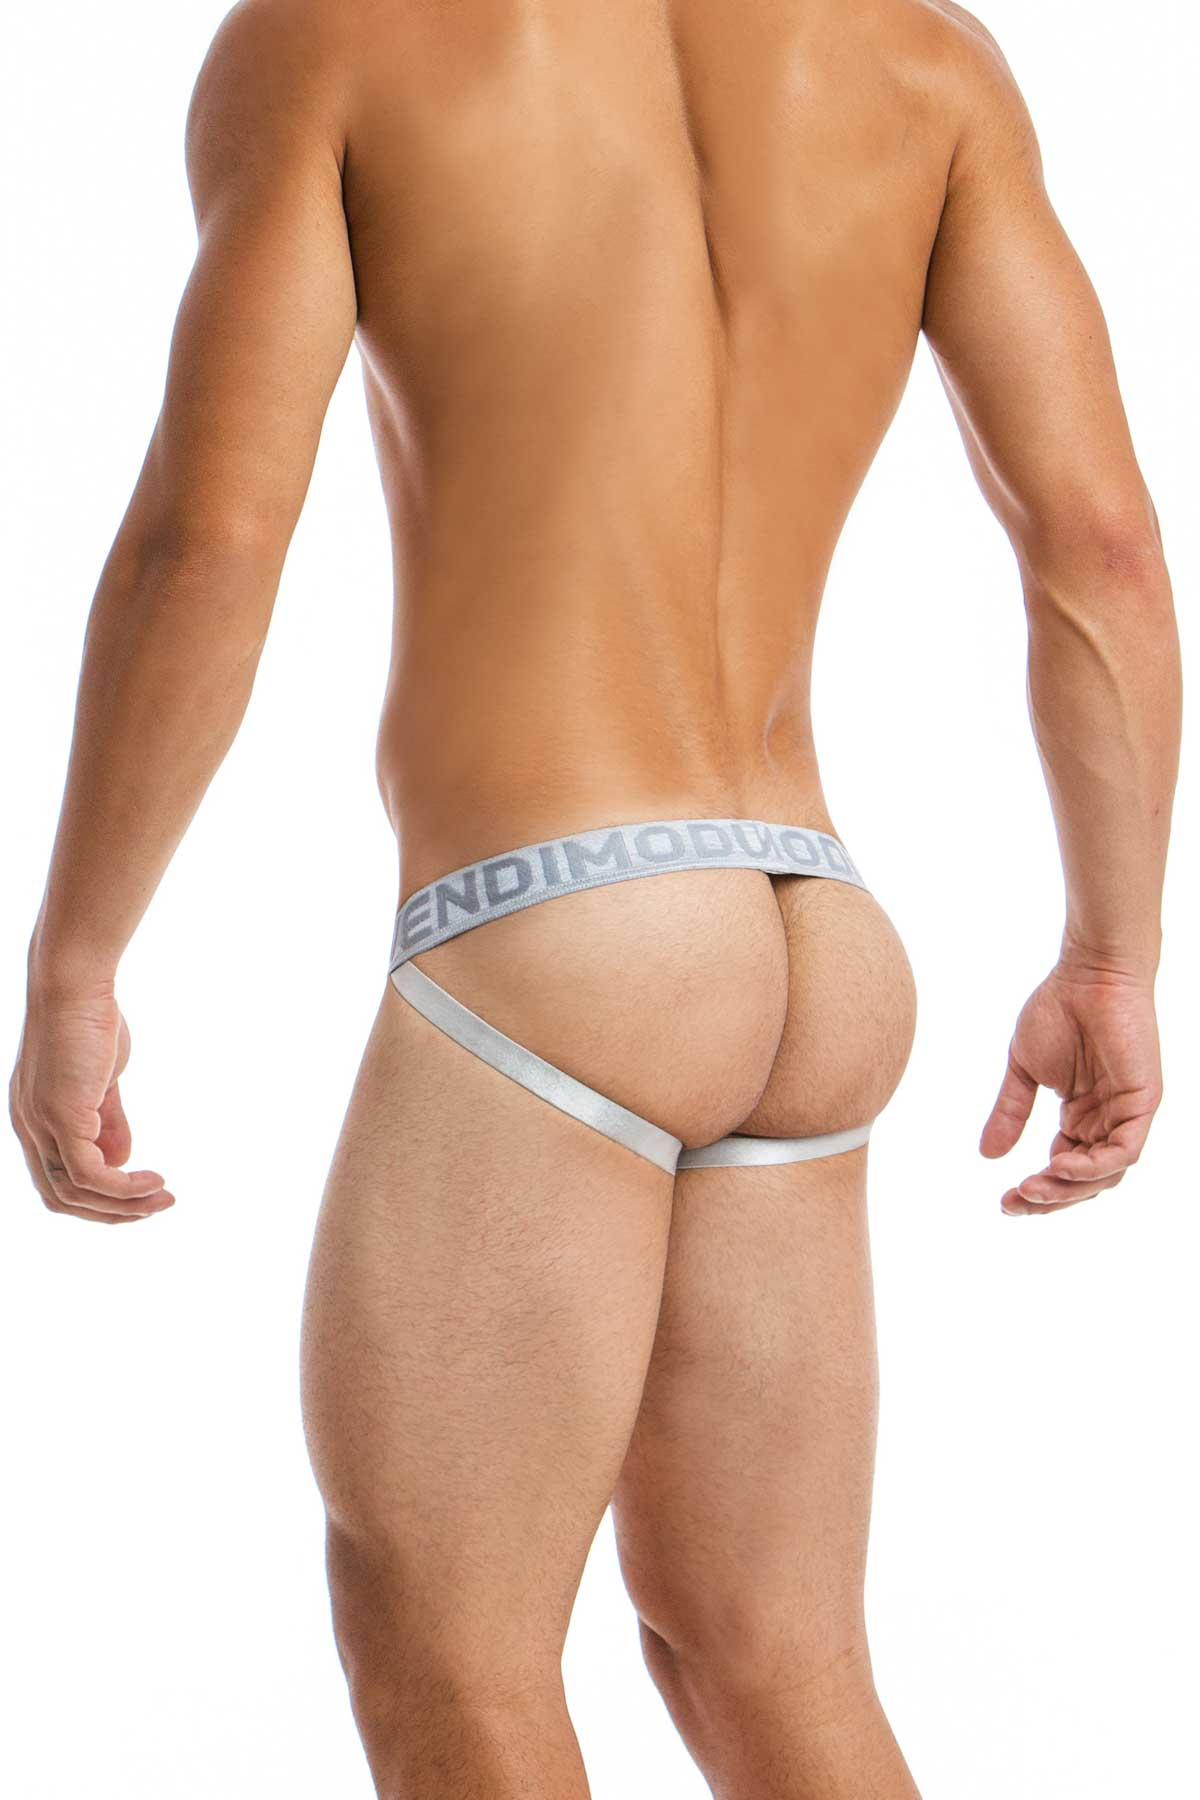 Male model wearing Modus Vivendi Men's Underwear available at www.MensUnderwear.io